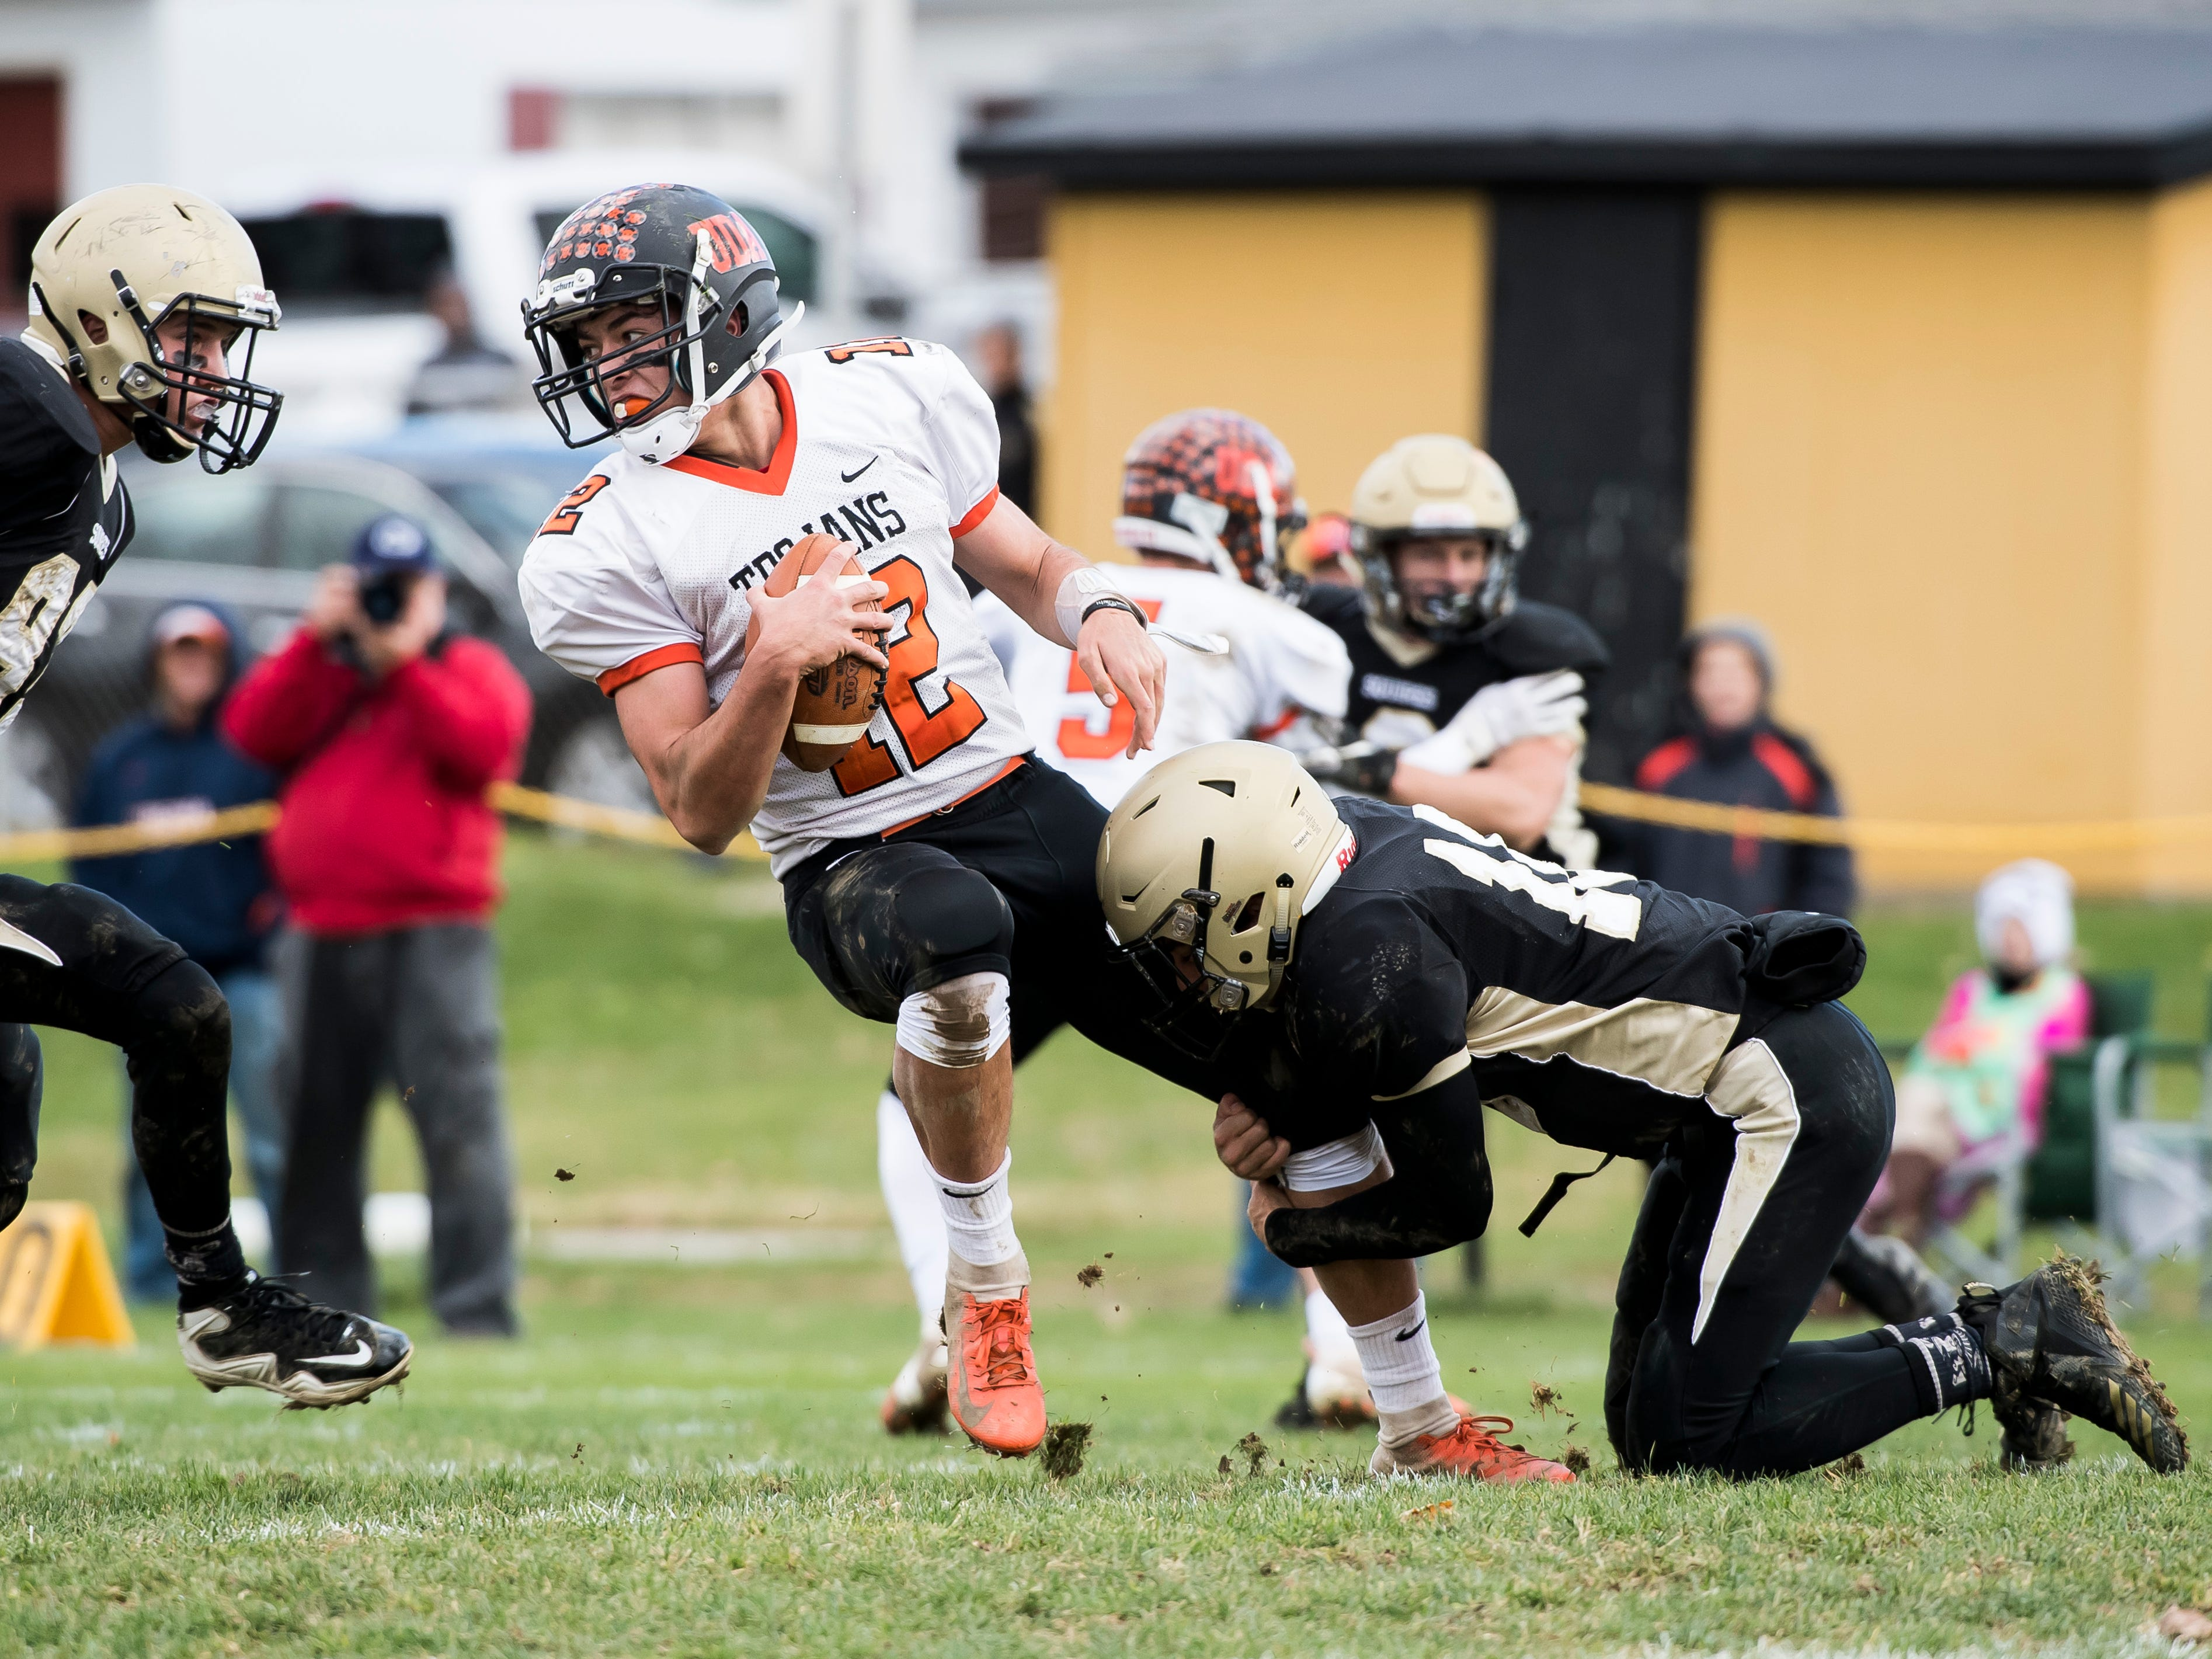 Delone Catholic's Evan Brady tackles Upper Dauphin's Macklin Ayers during a District III Class 2A semifinal game on Saturday, November 3, 2018. The Squires won 48-23.